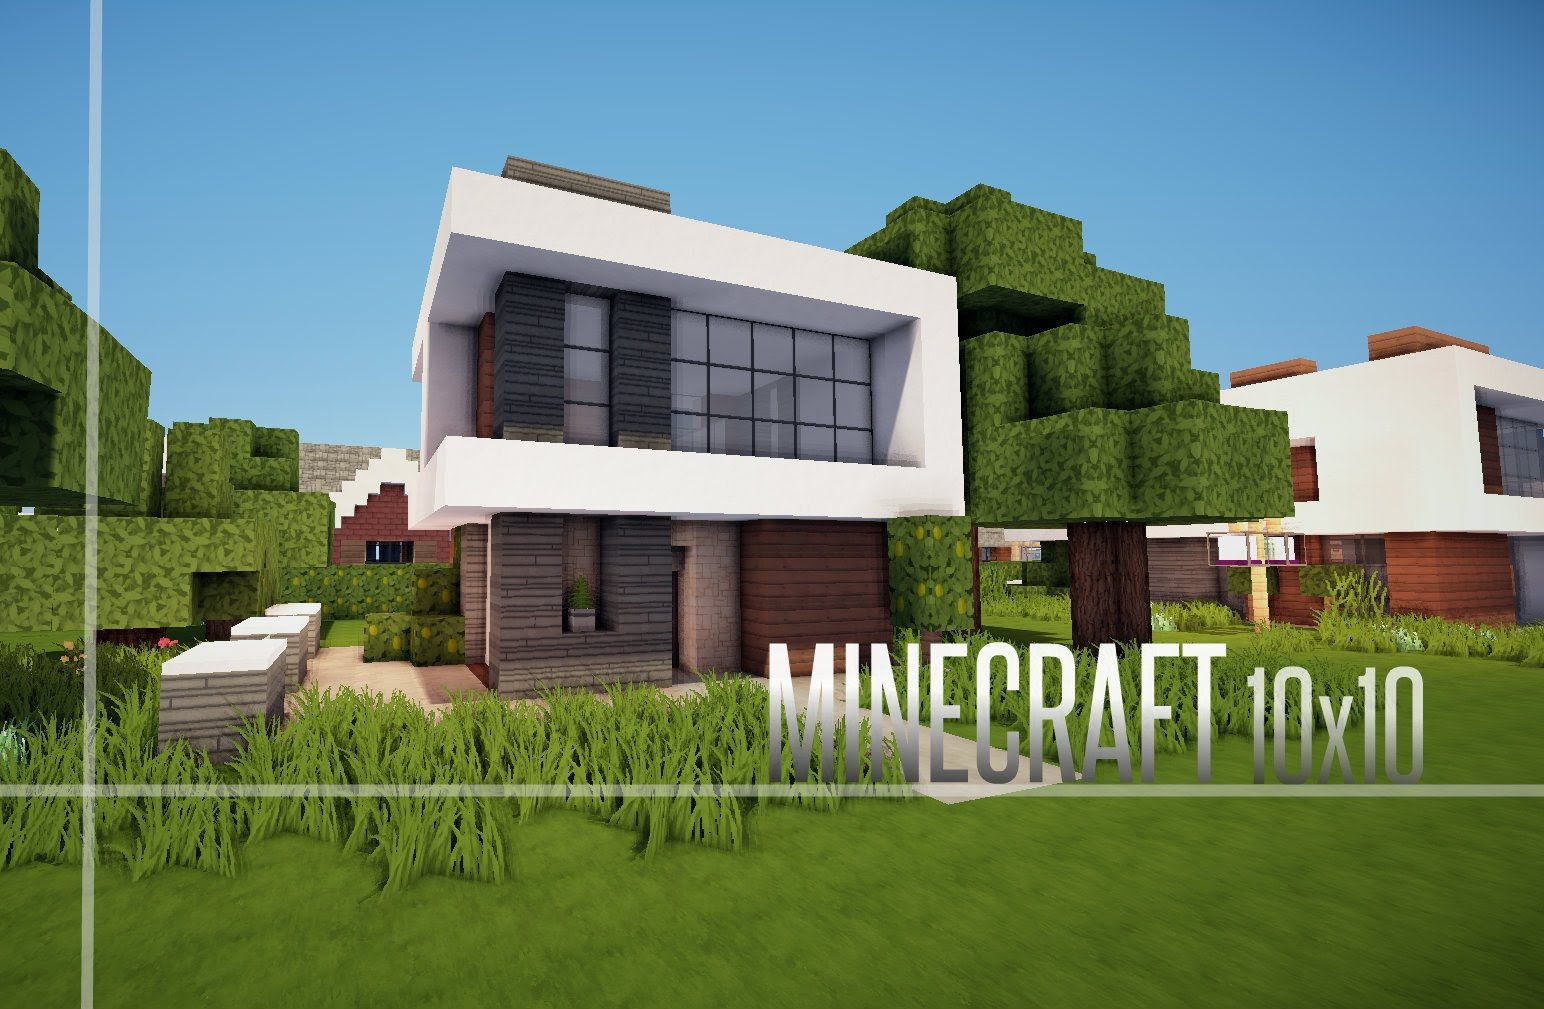 Biggest Minecraft House In The World 2013 layers modern house | minecraft building inc | minecraft town